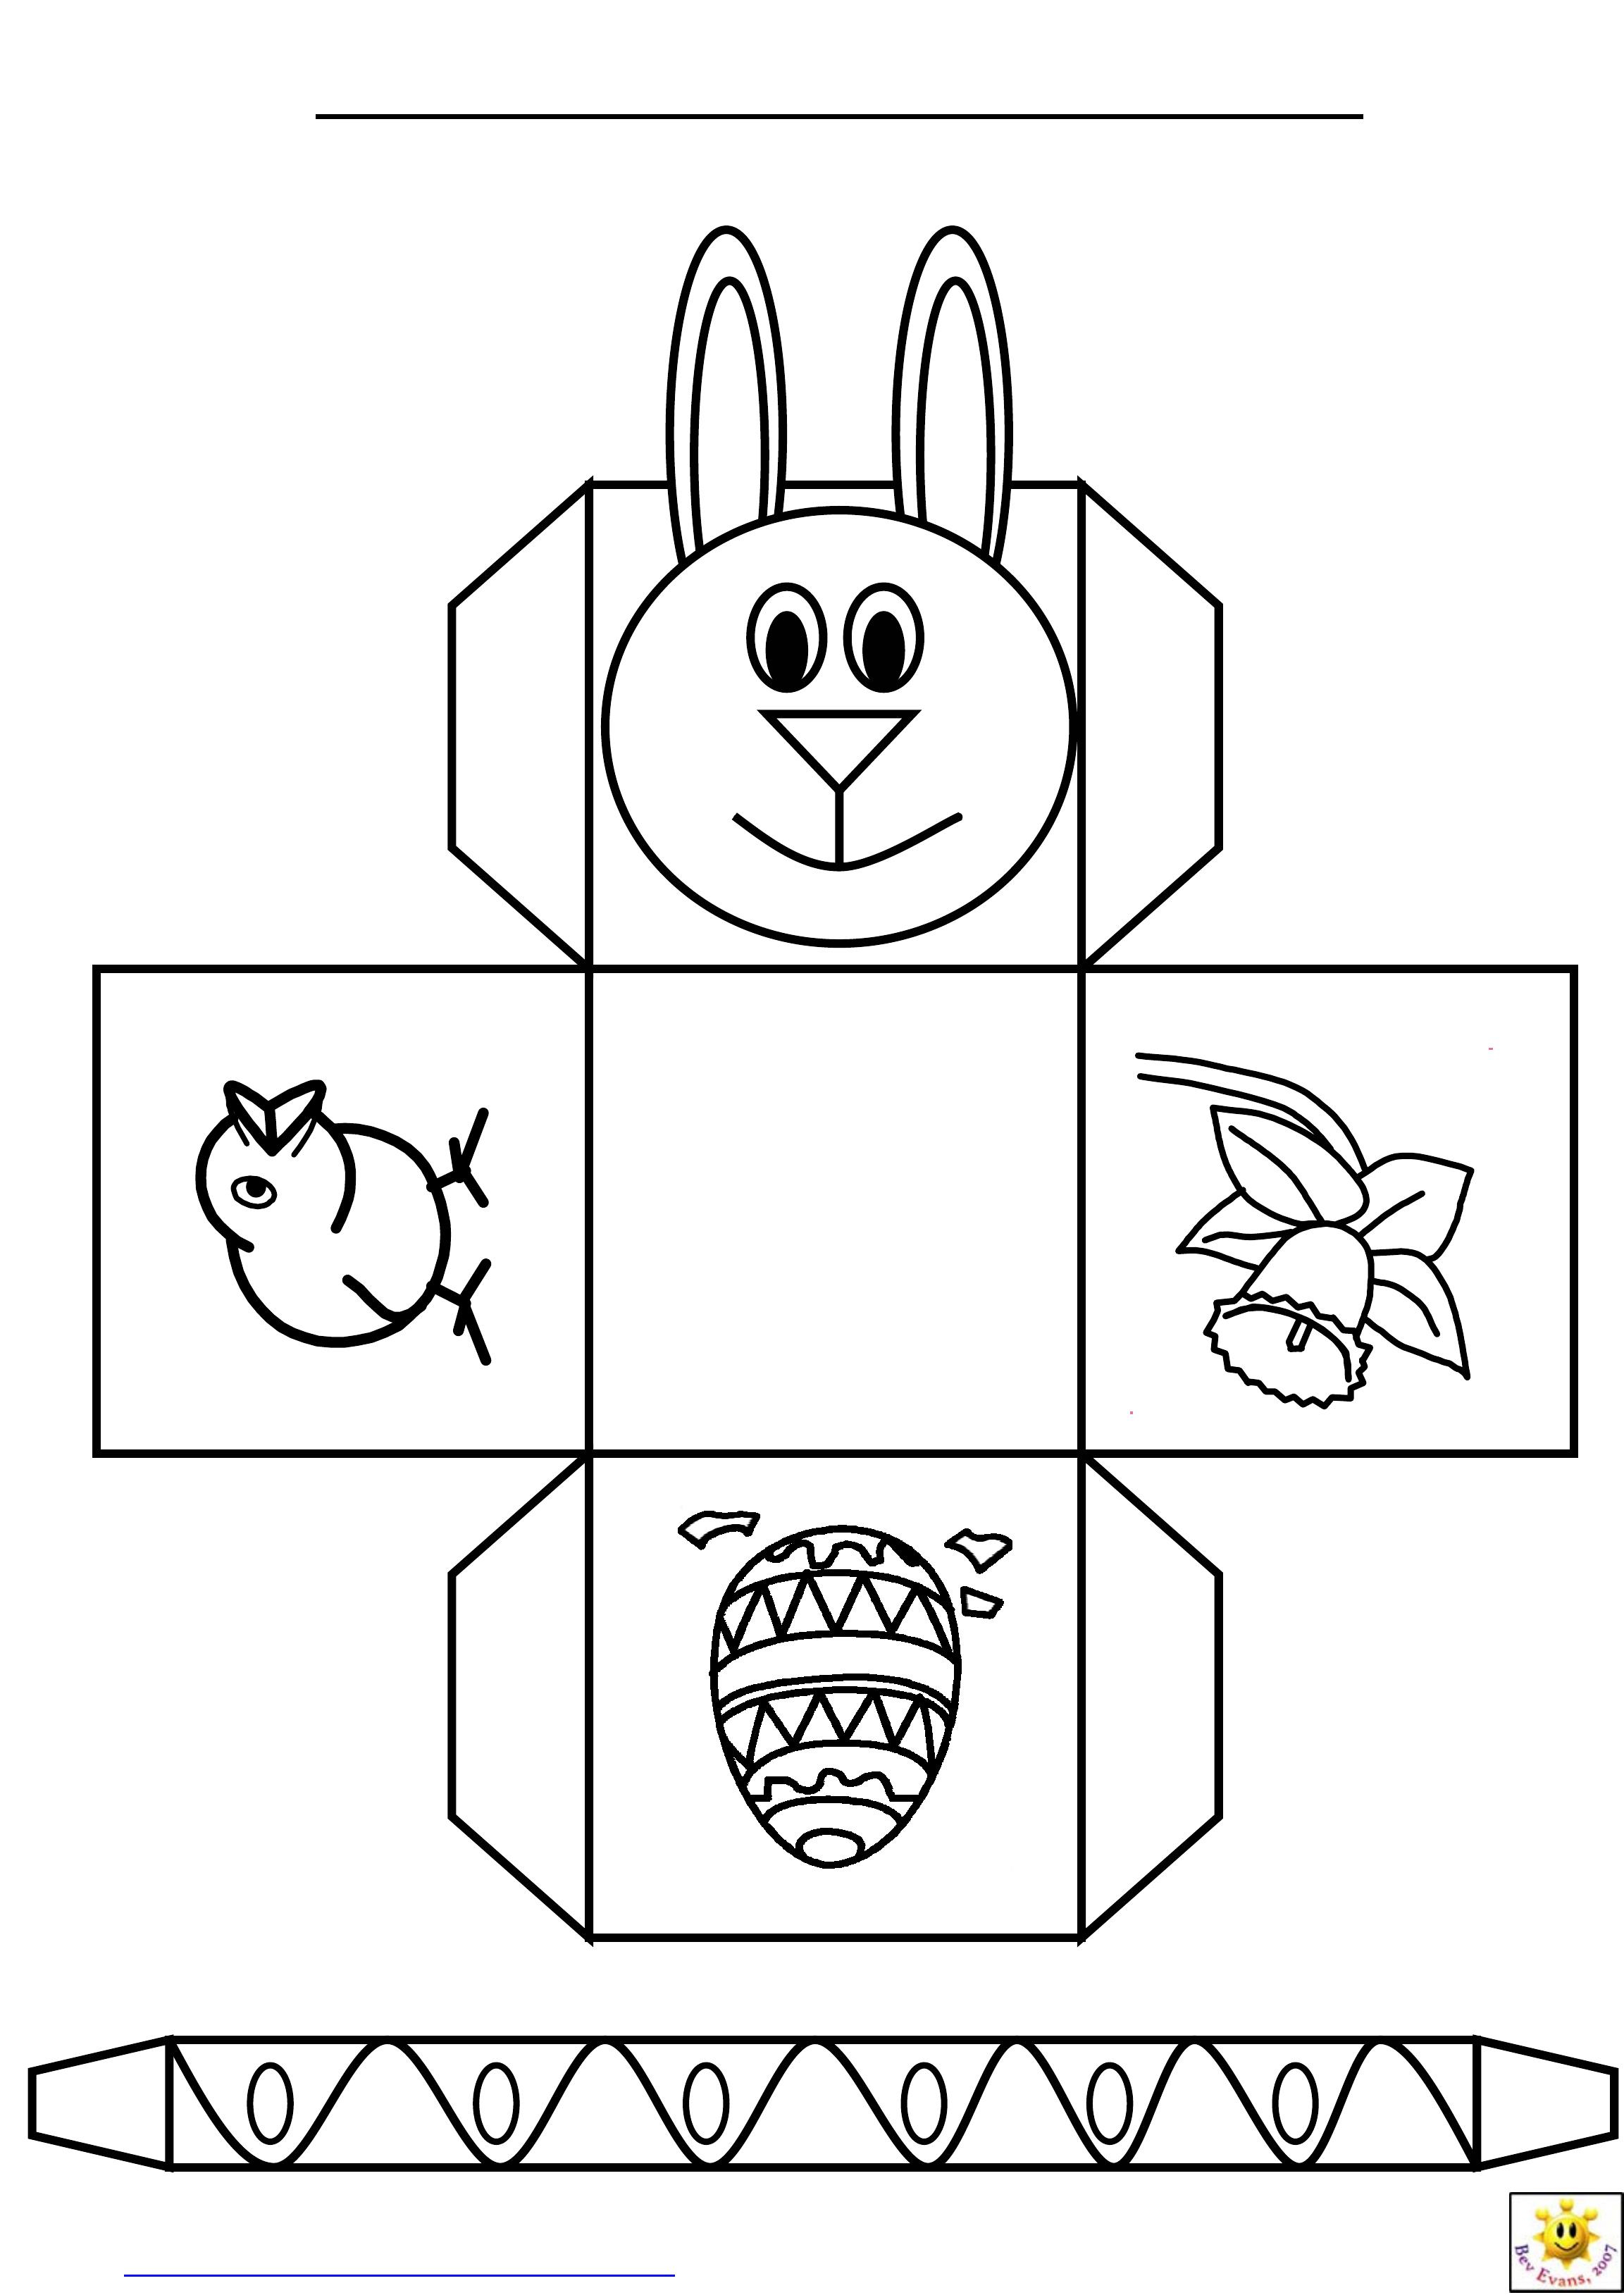 Easter Basket Templates Free – Hd Easter Images - Free Printable Easter Baskets